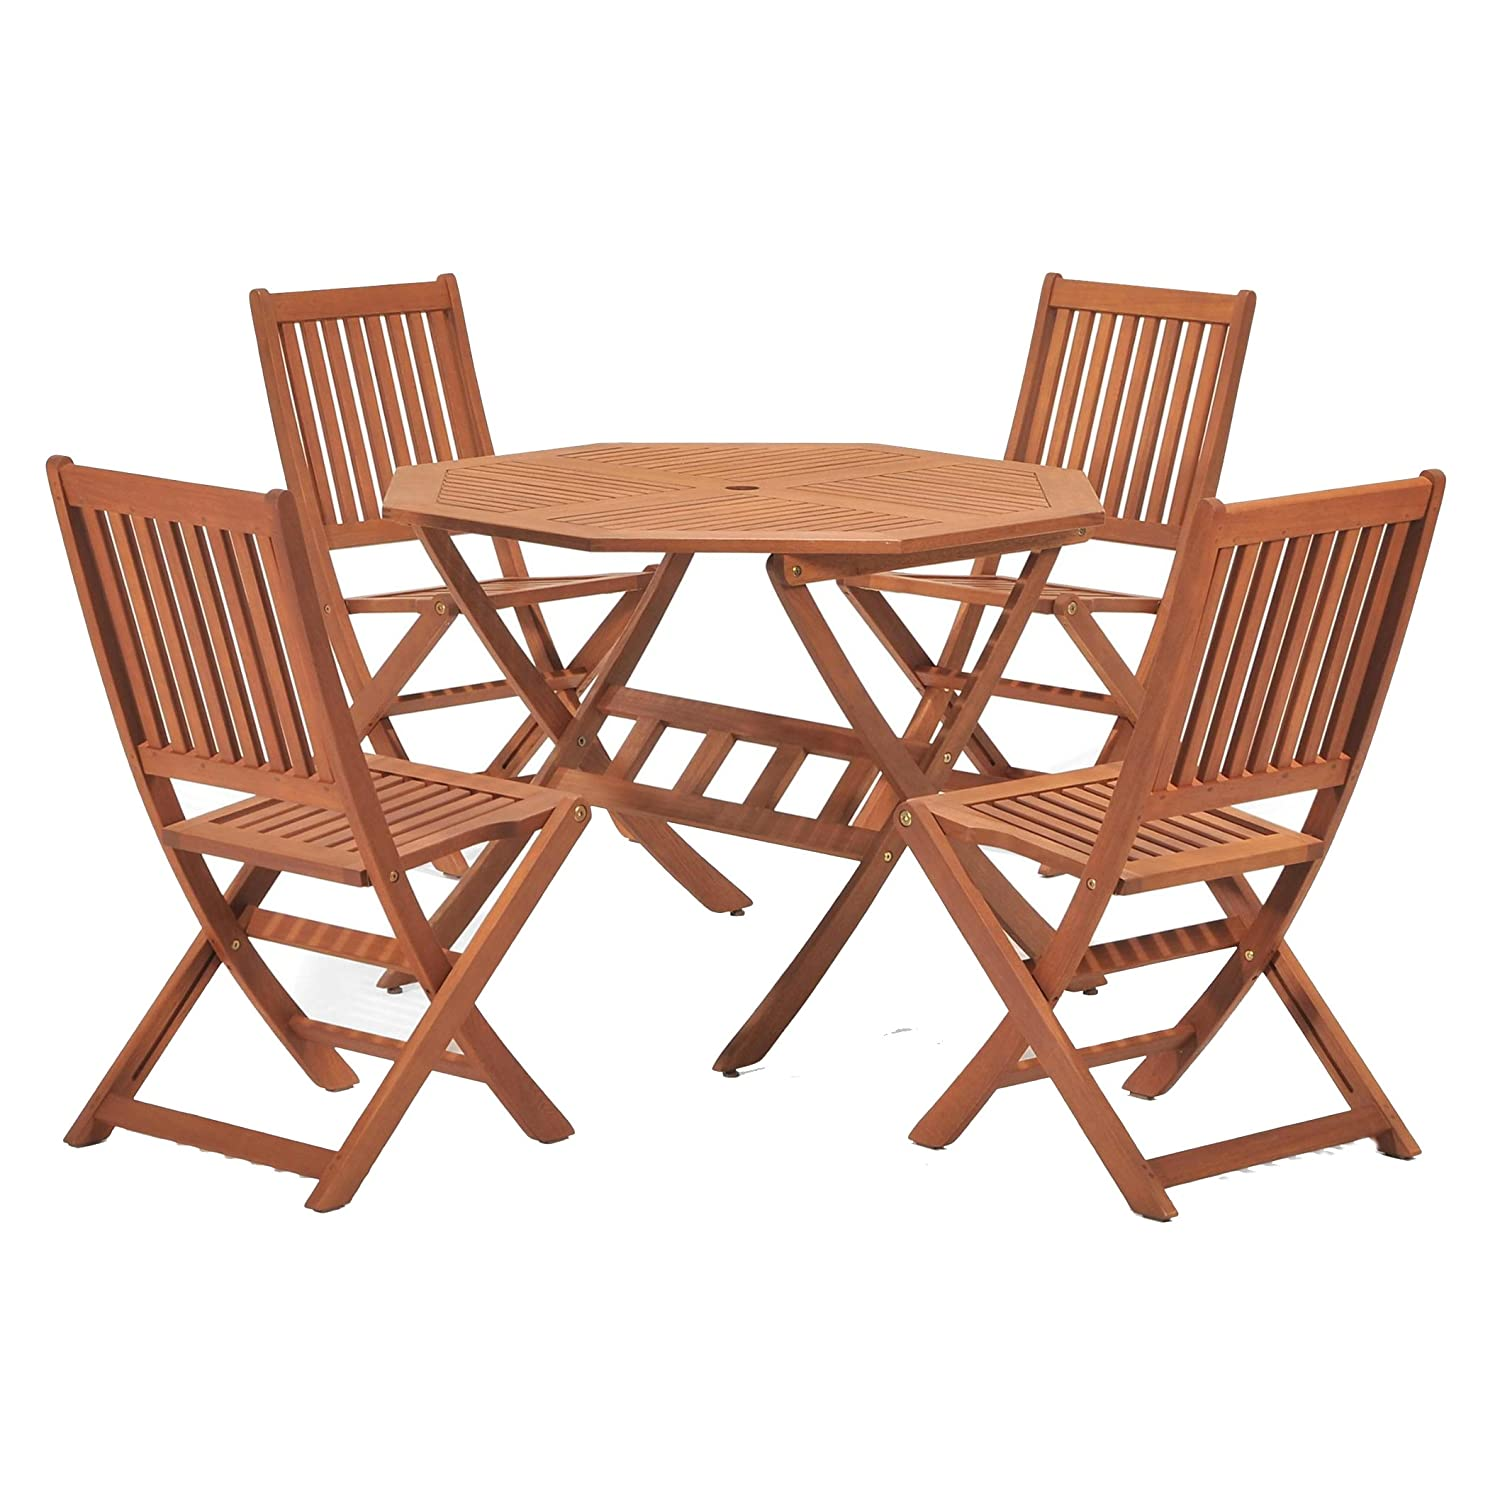 NEW Outdoor Dining Set Eucalyptus Wood Chairs Table Garden